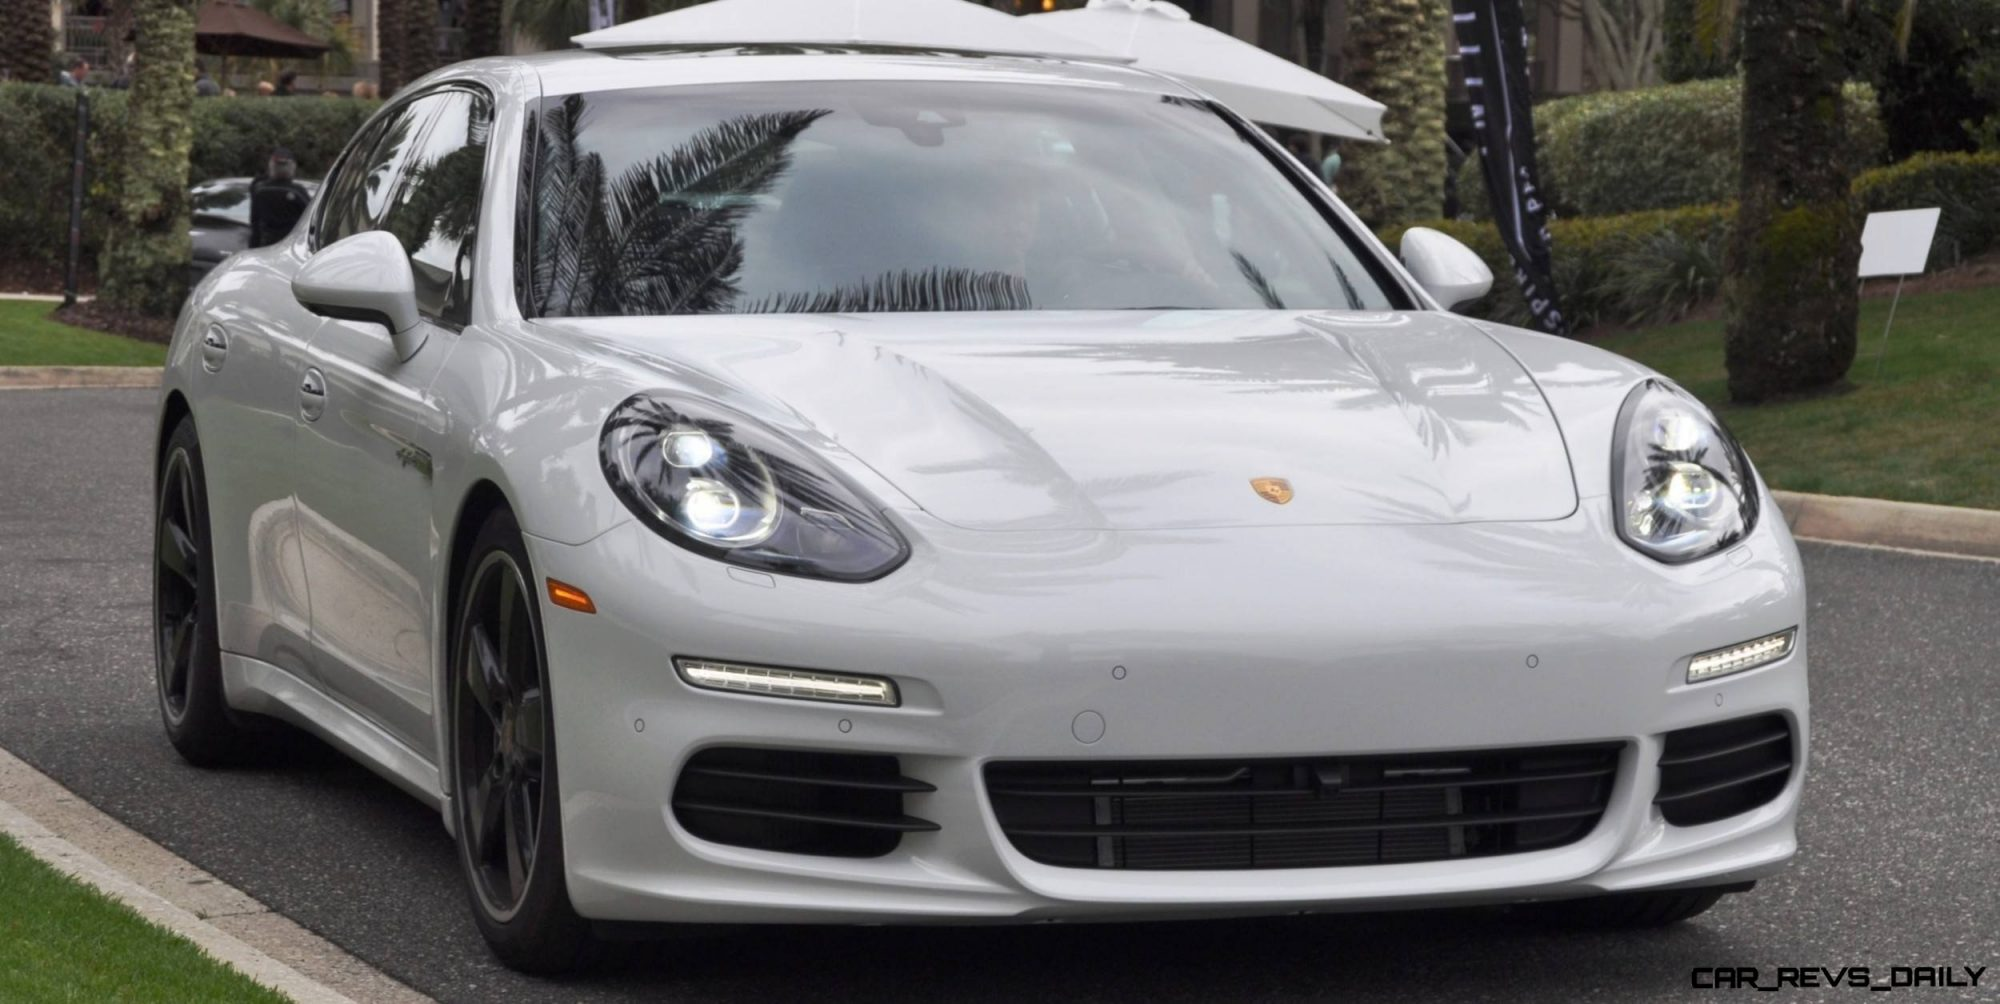 2014 Porsche Panamera S E-Hybrid -- 30 Real-Life Photos -- Live Configurator Link + 80 Images of Options, All Colors and All Wheels 93